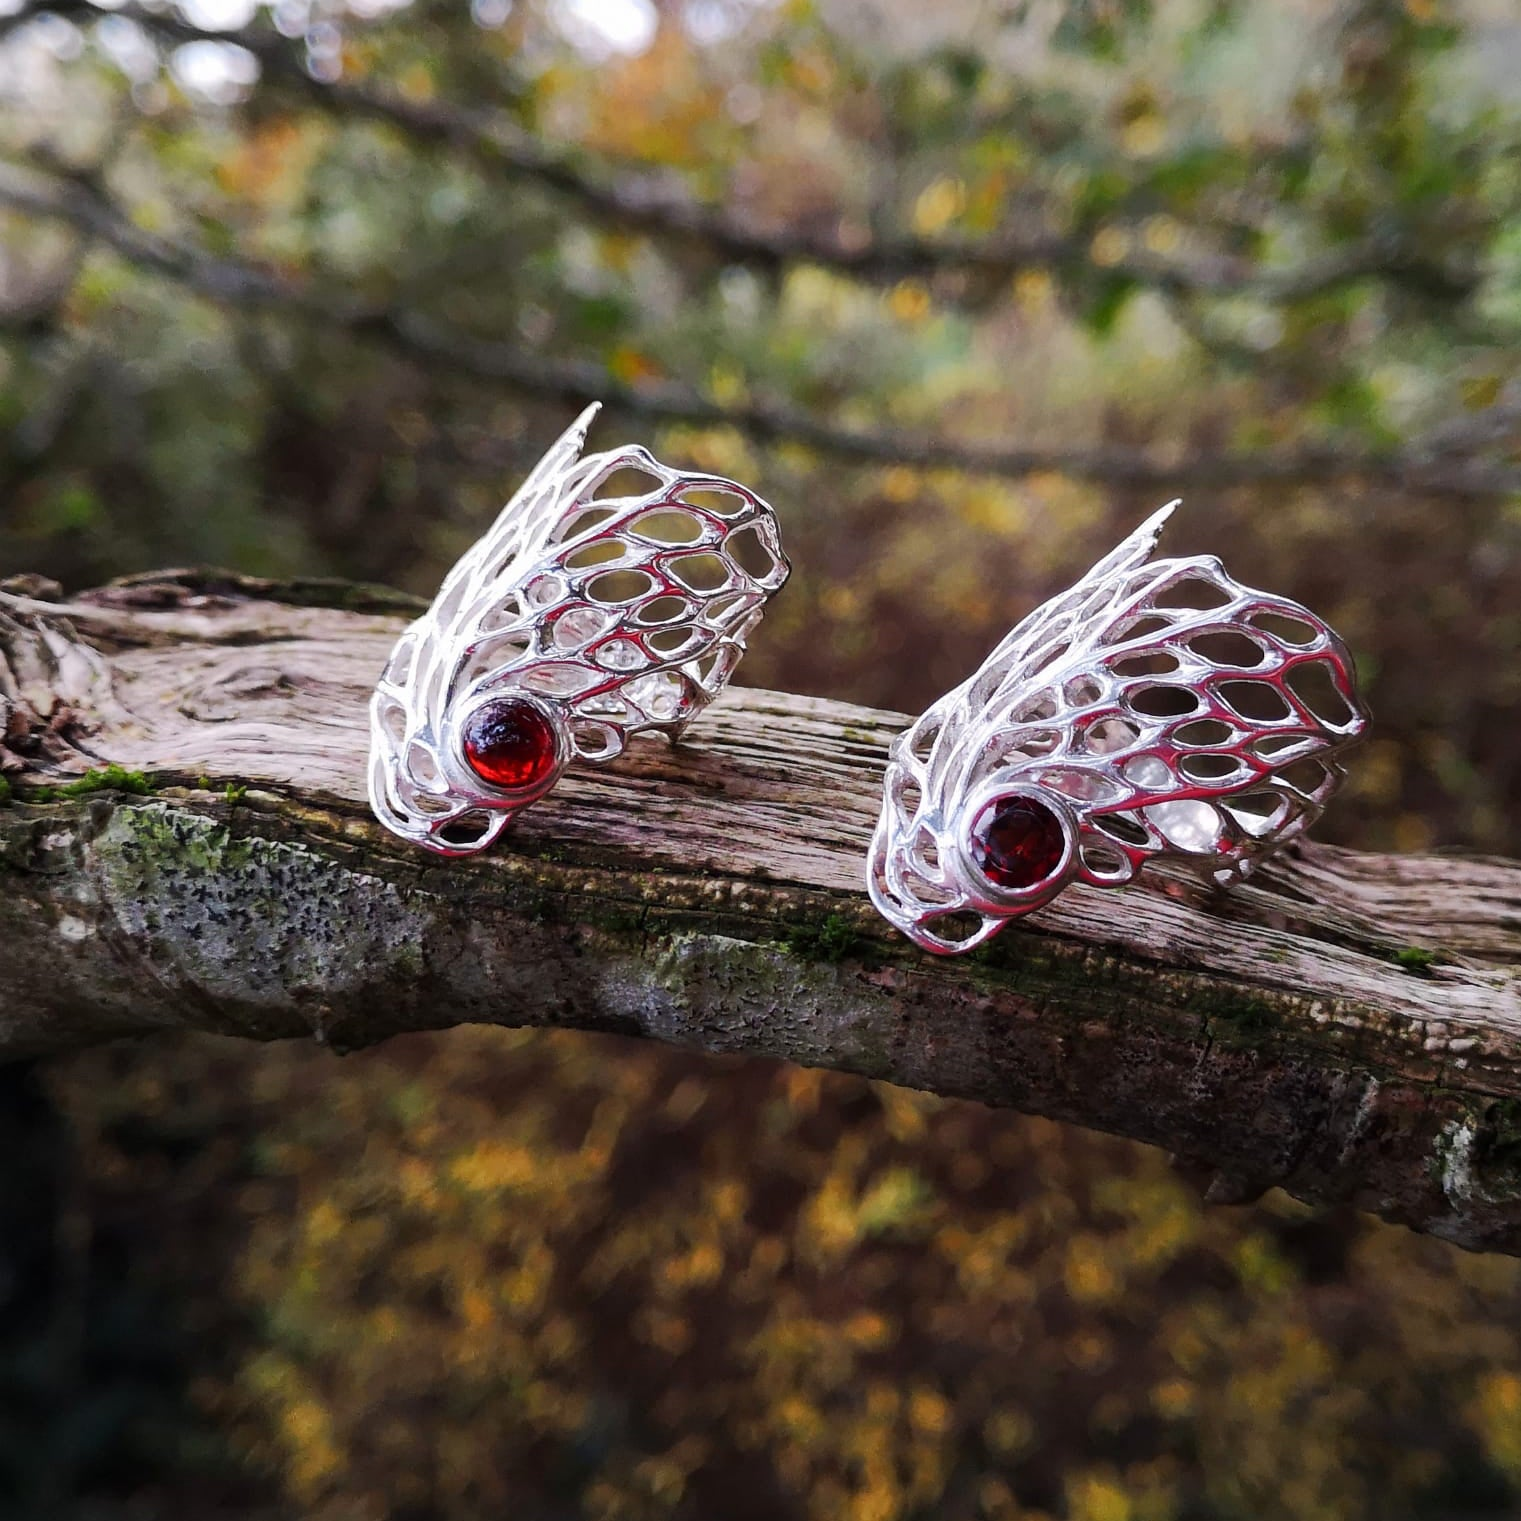 Ethereal Gossamer Stament Rings with different cuts of garnet gemstones nestled within.